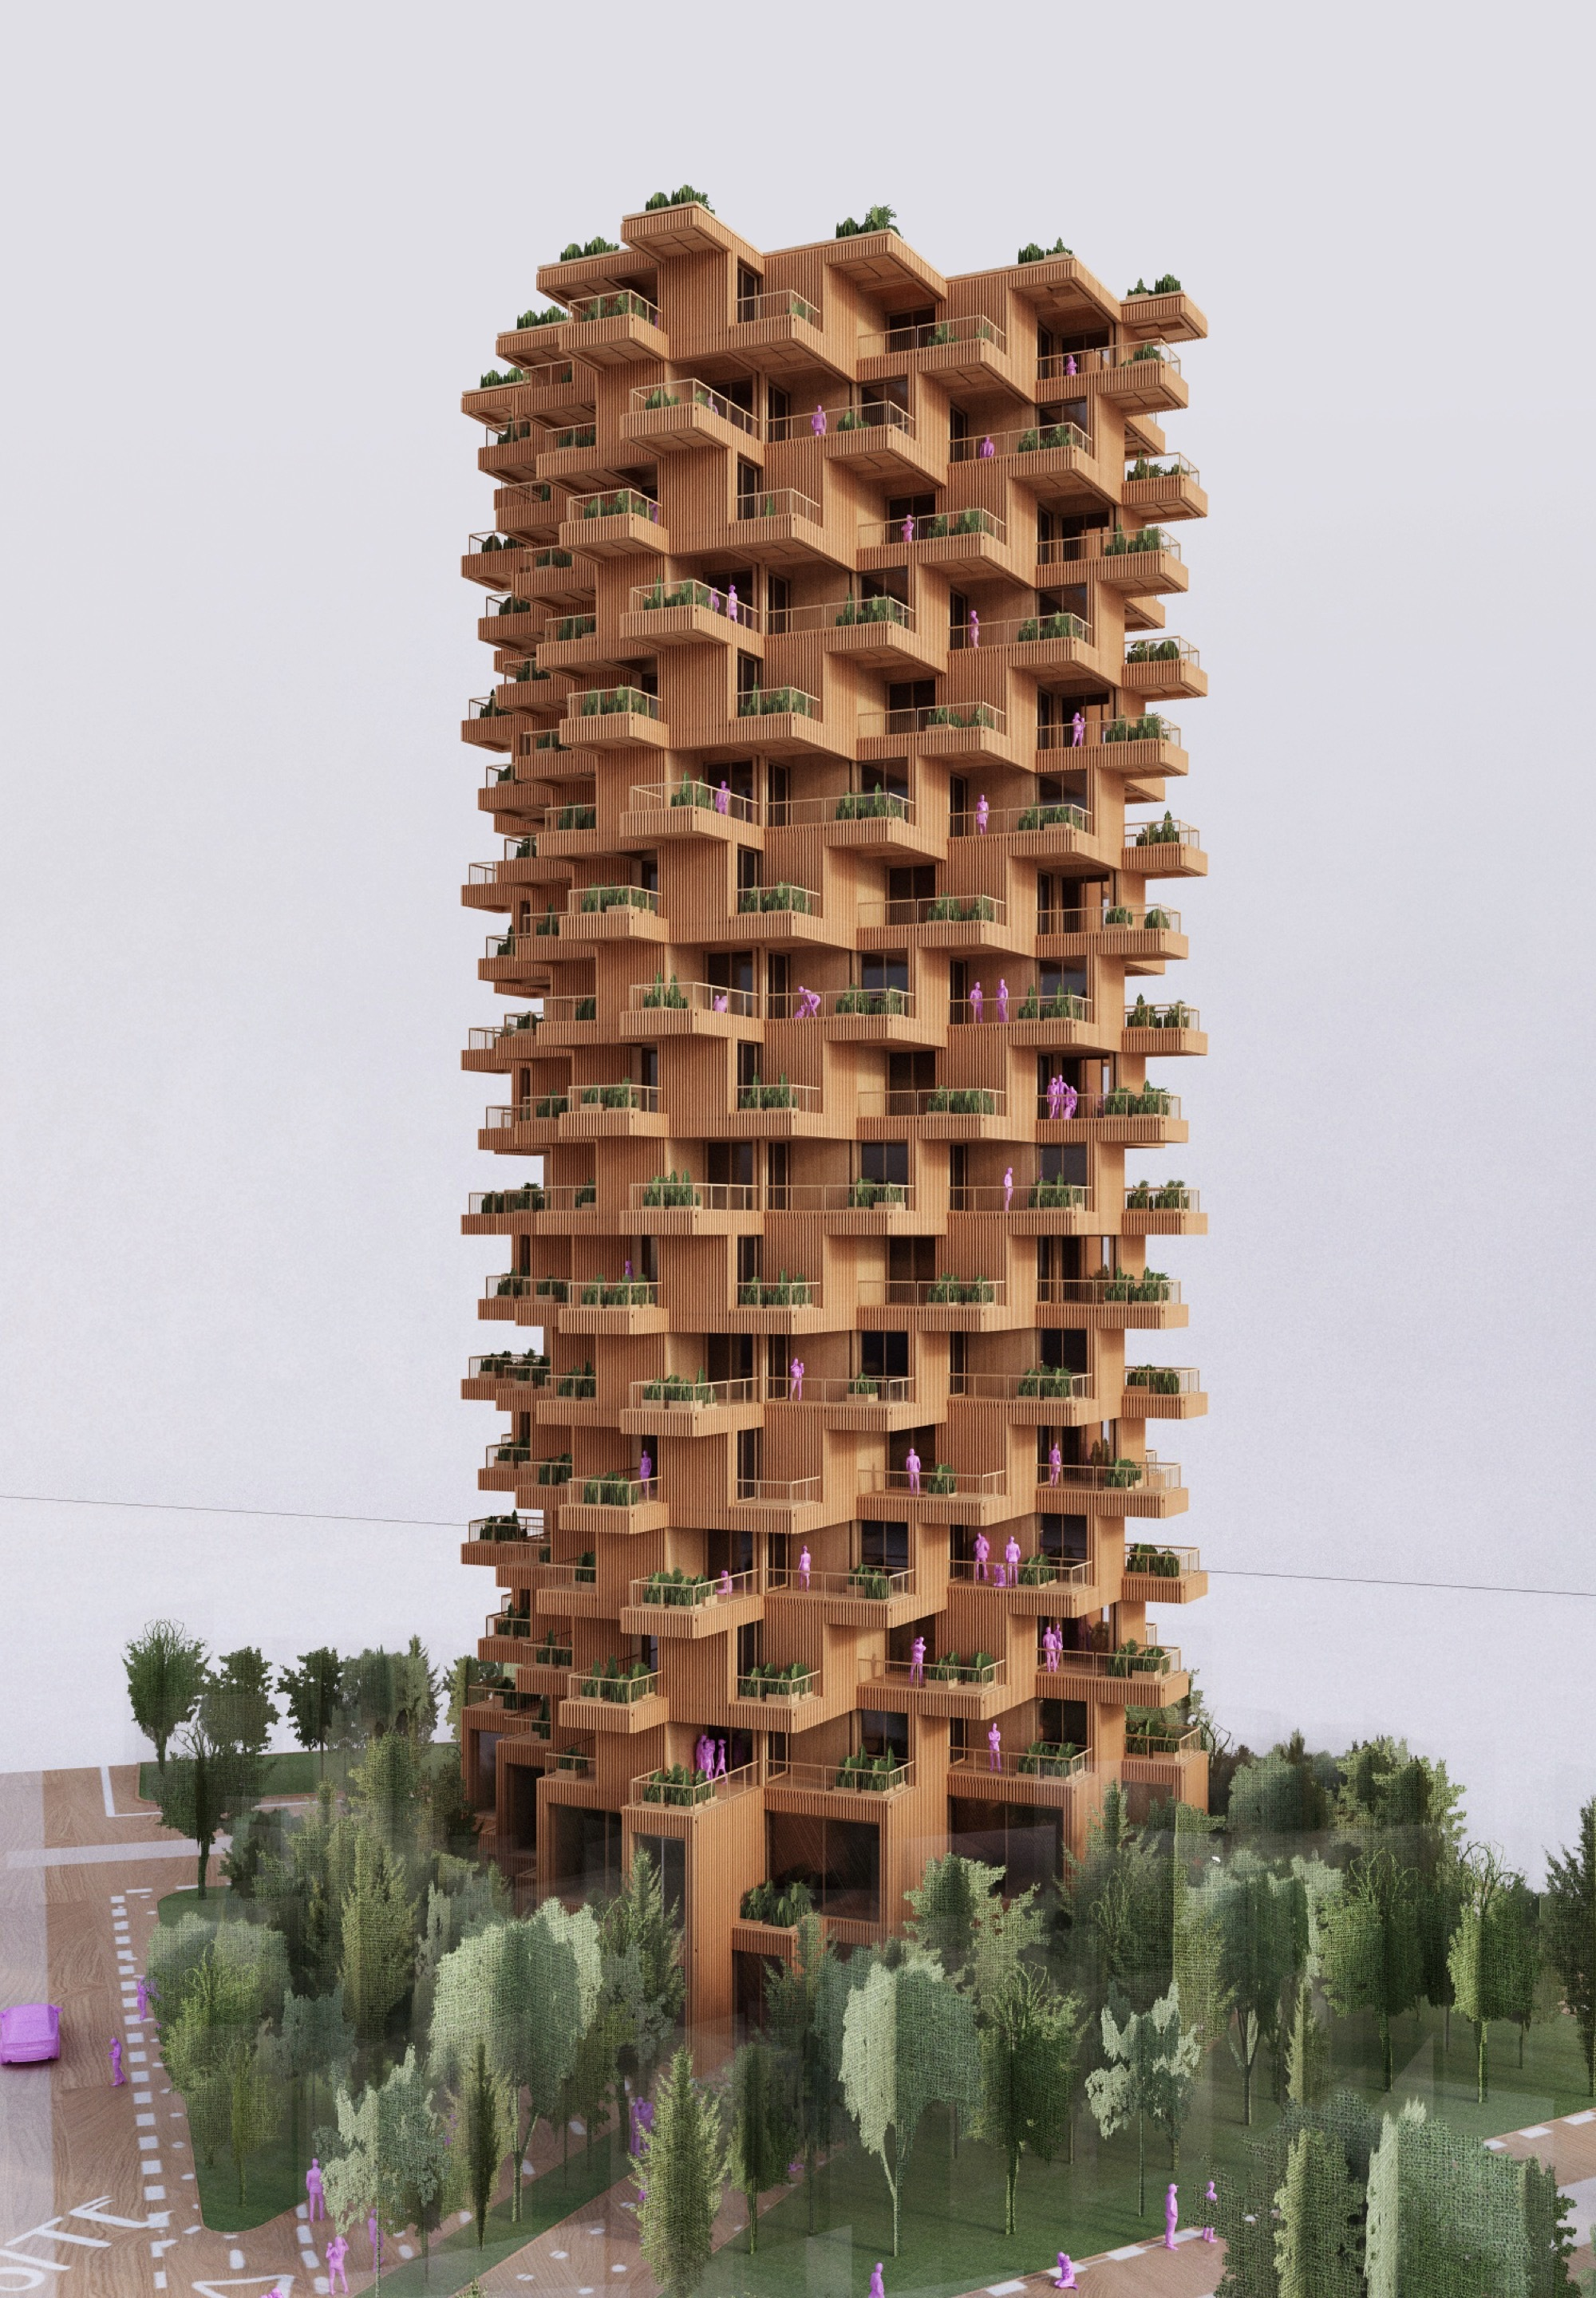 Gallery of Penda Designs Modular Timber Tower Inspired by ...